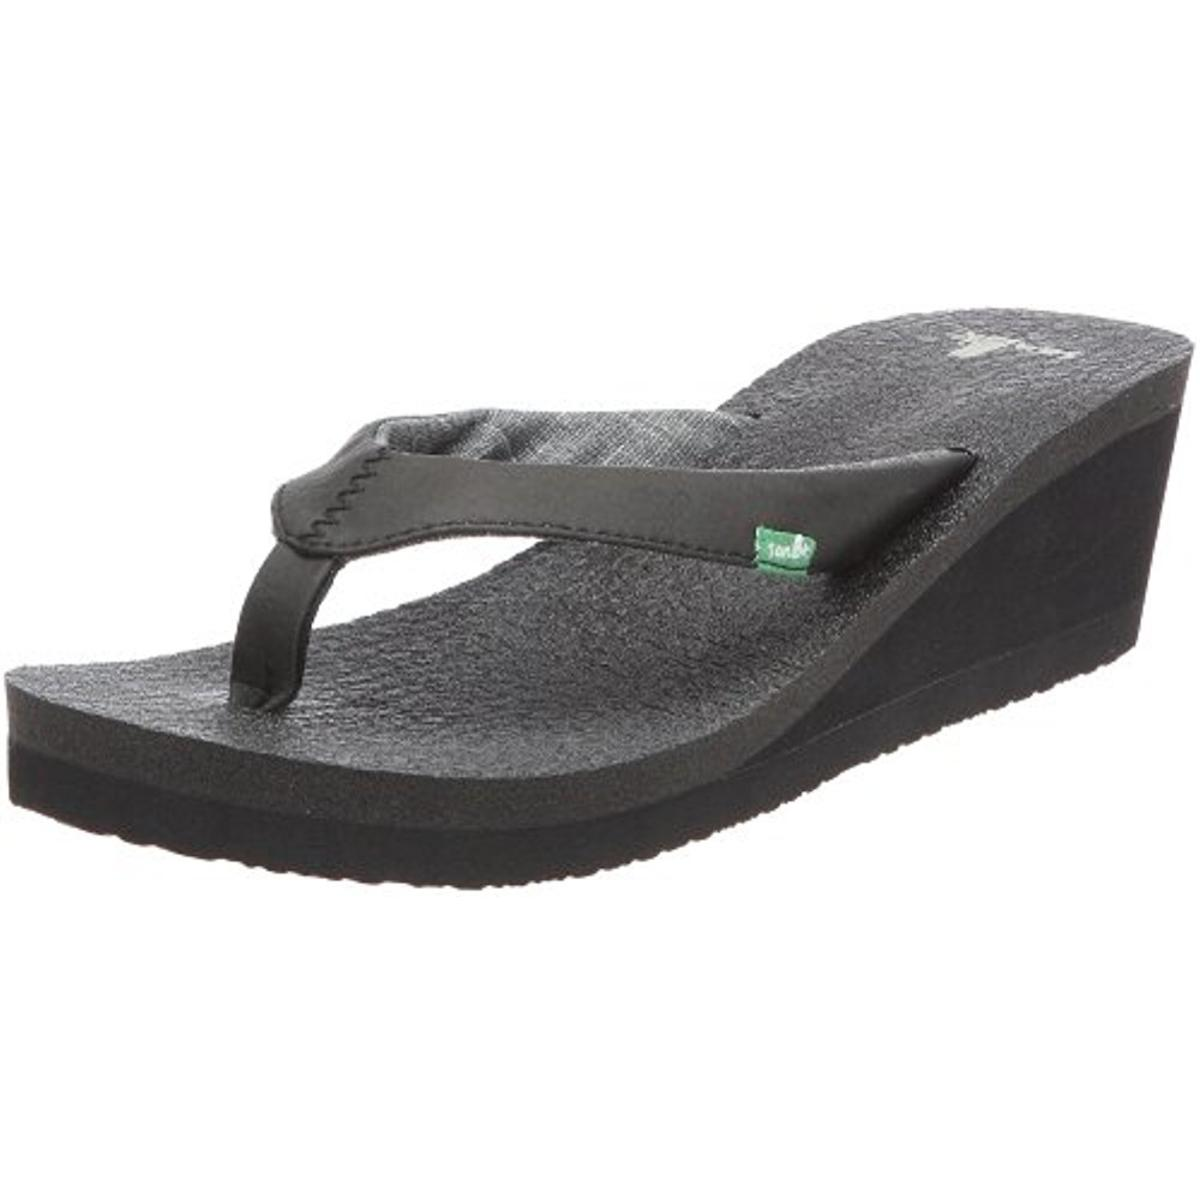 Sanuk Yoga Shoes Amazon: Sanuk 8978 Womens Yoga Mat Slide Thong Wedge Sandals Shoes